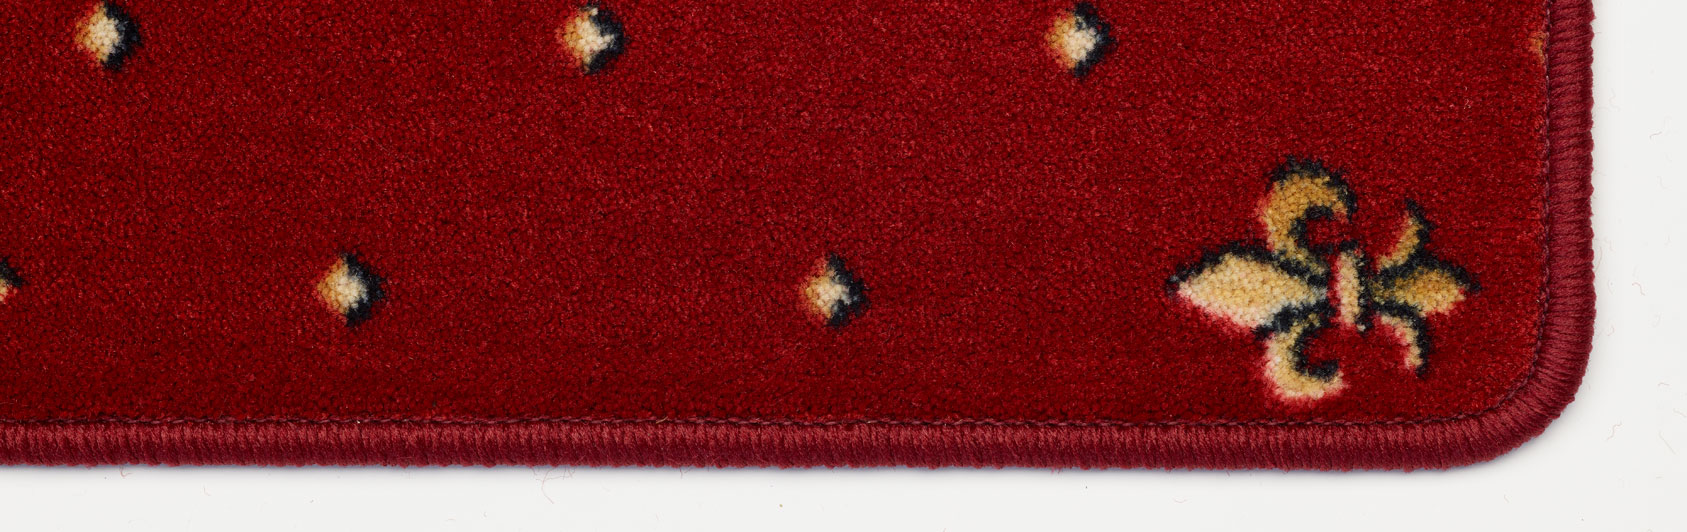 church carpet Skala color code 28 color red